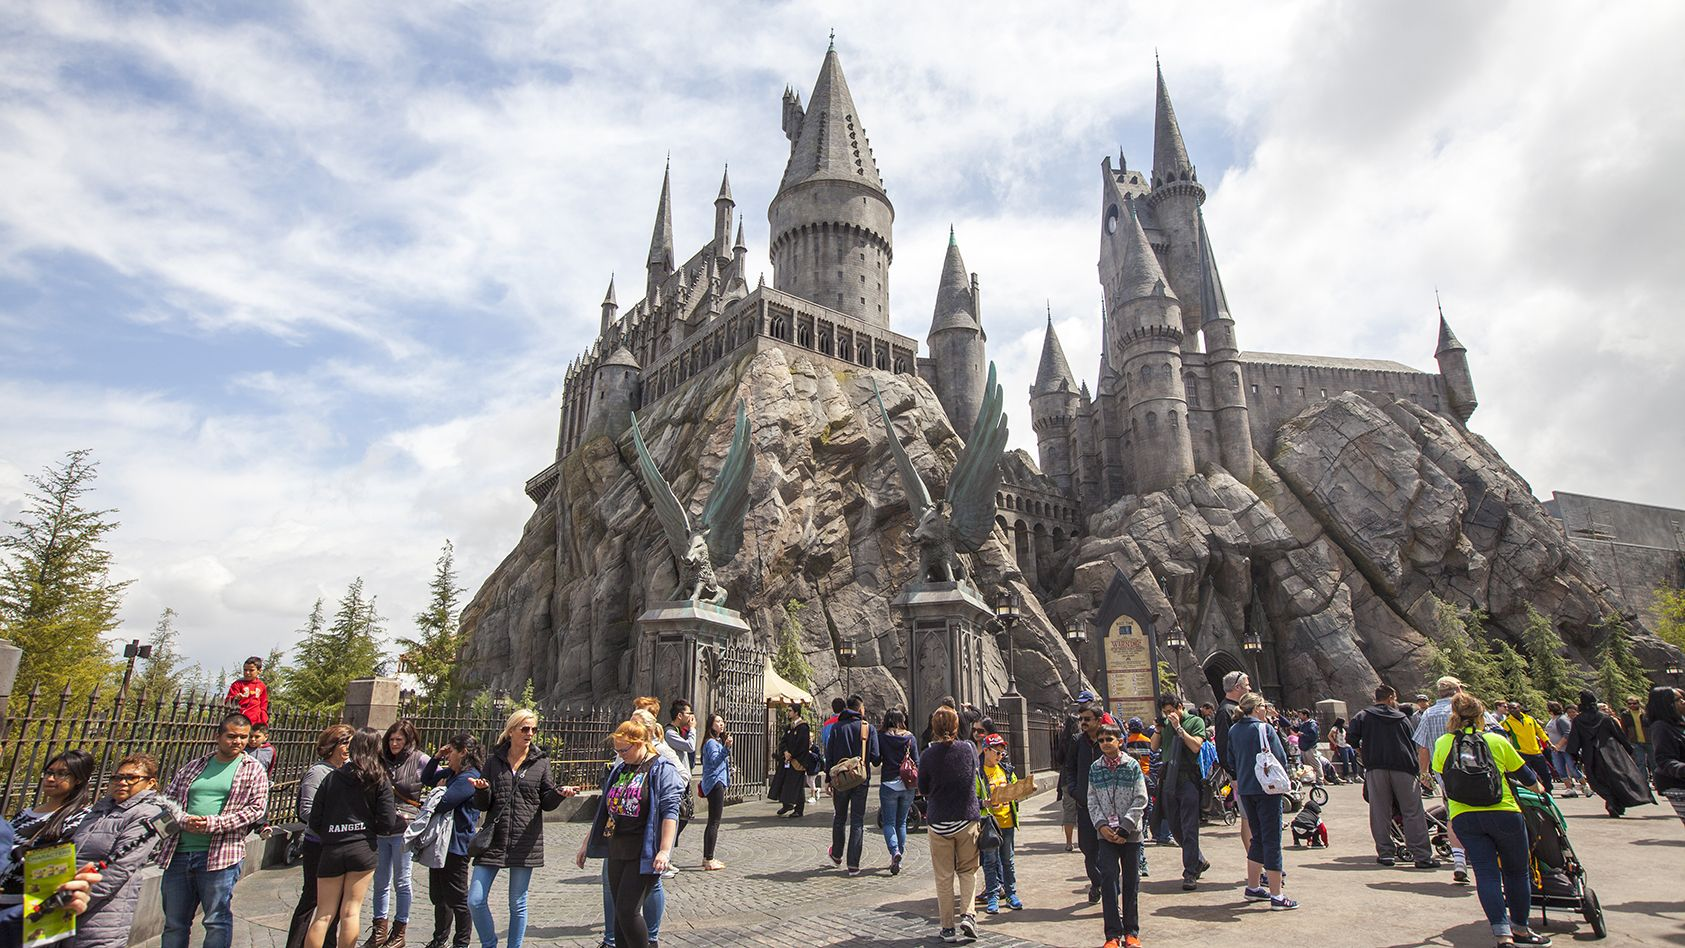 A Guide To The Wizarding World Of Harry Potter Wizarding World Of Harry Potter Wizarding World Harry Potter Theme Park